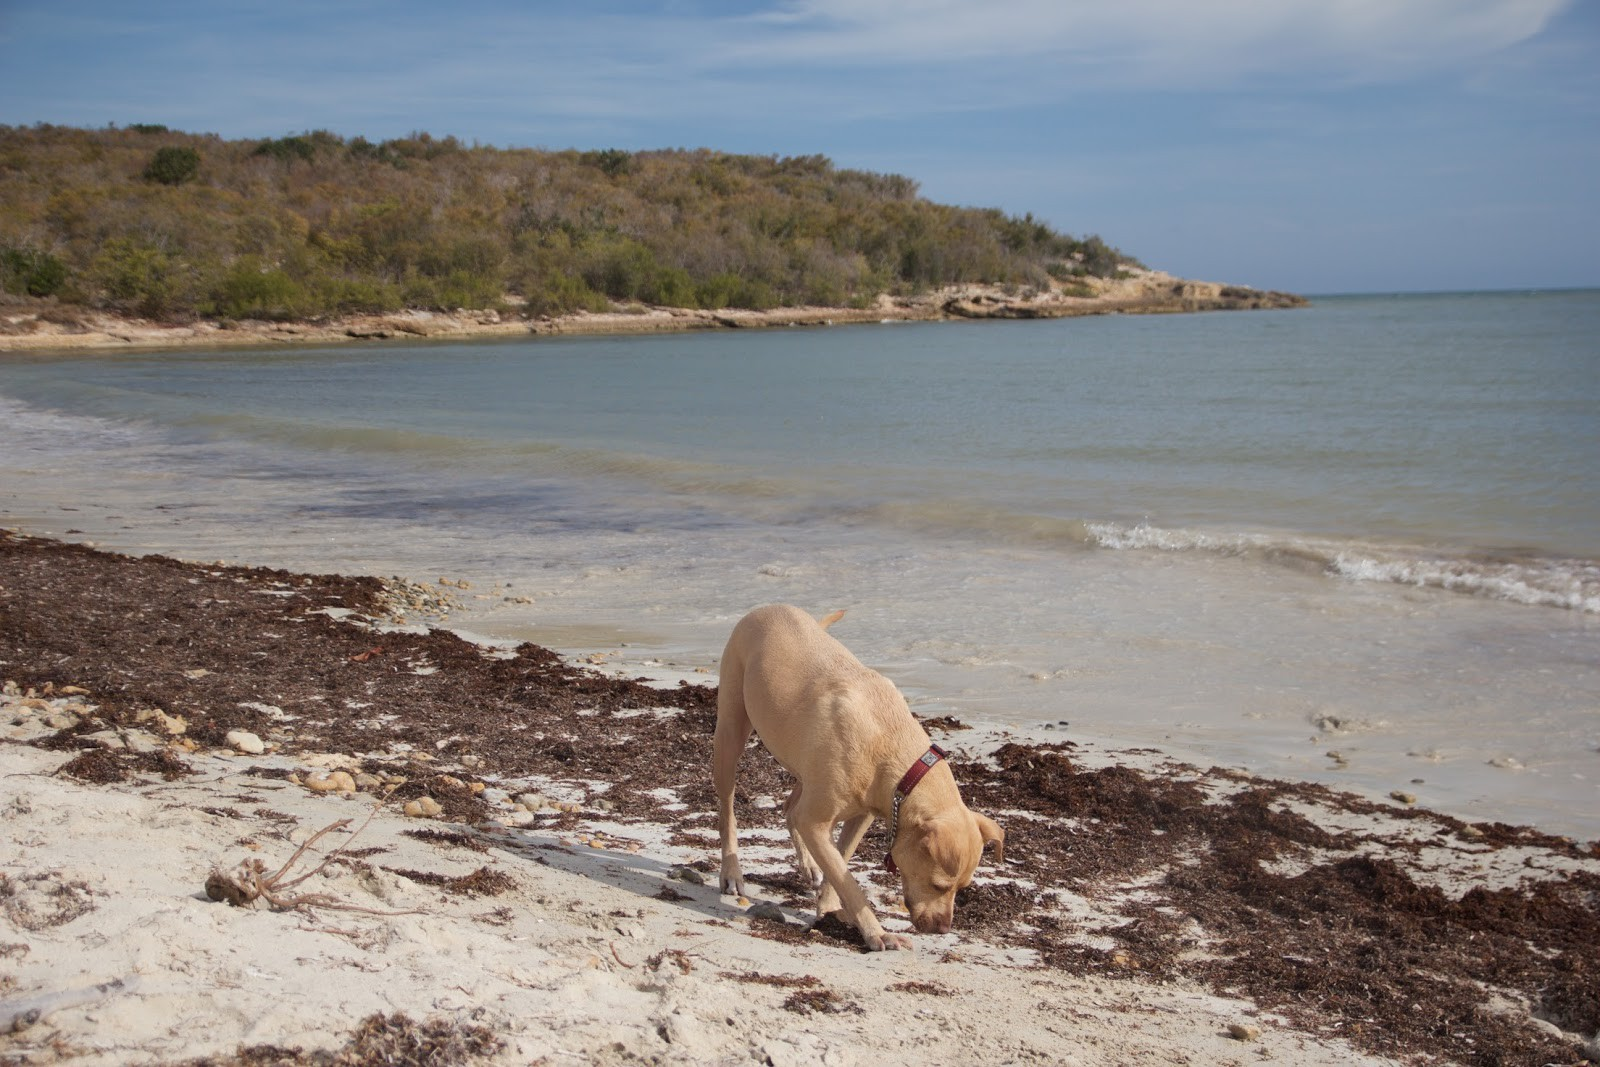 Georgia May sniffs at red algae that has washed up on the shore of the beach.